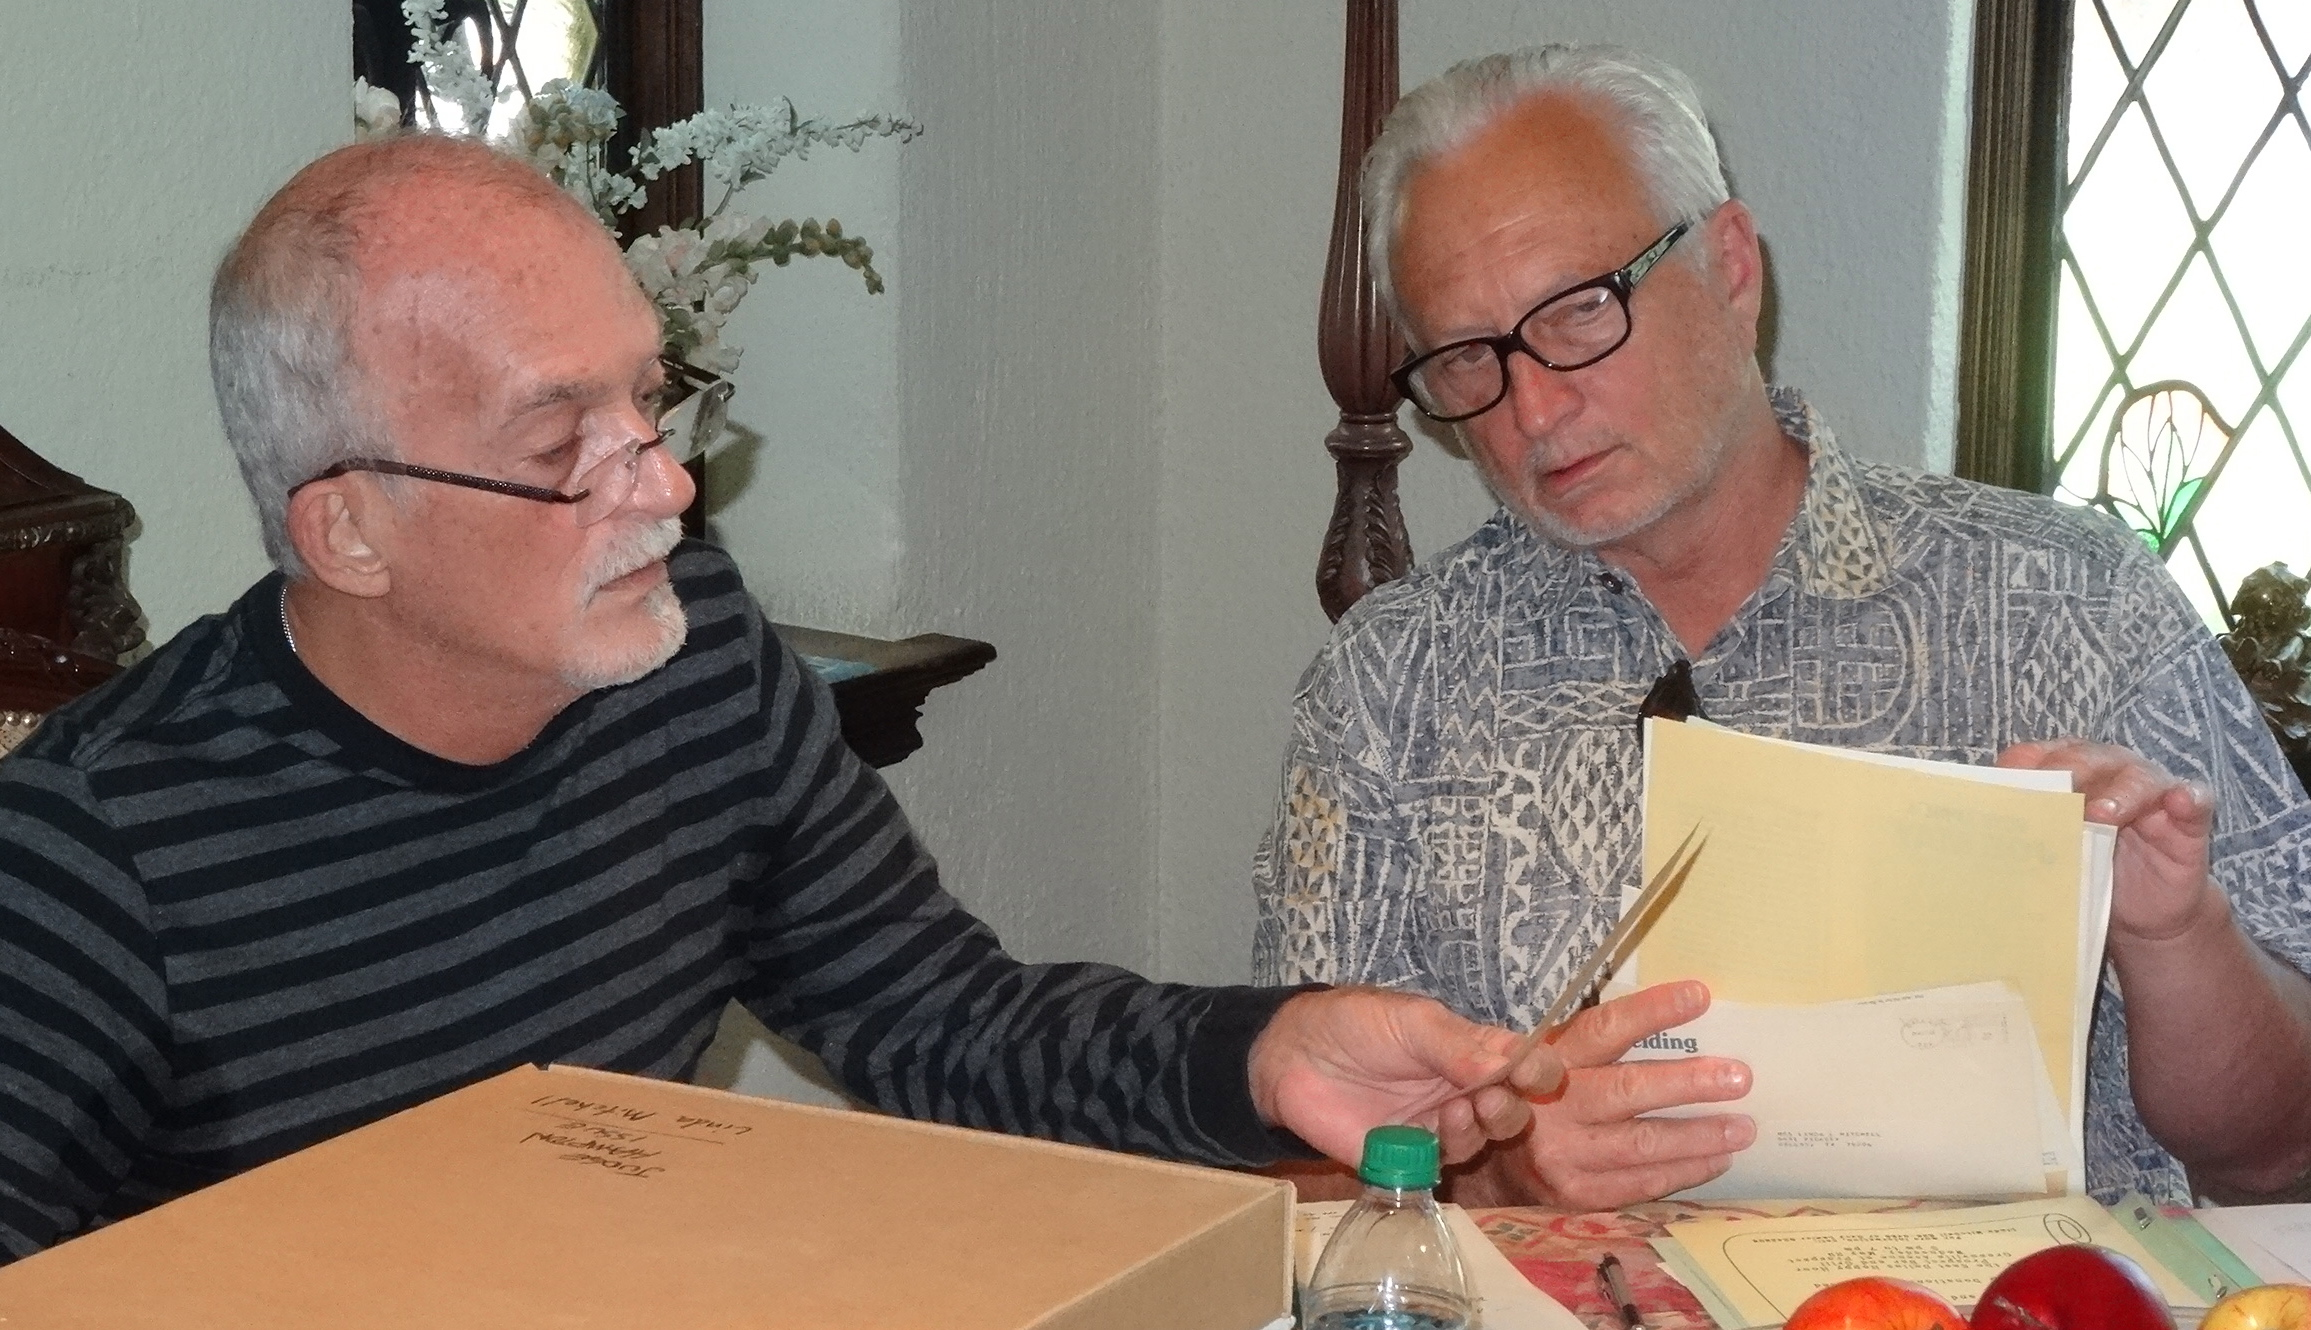 Board Members Terry Bucher and Buddy Mullino curate documents donated to The Dallas Way by the GLBT community.